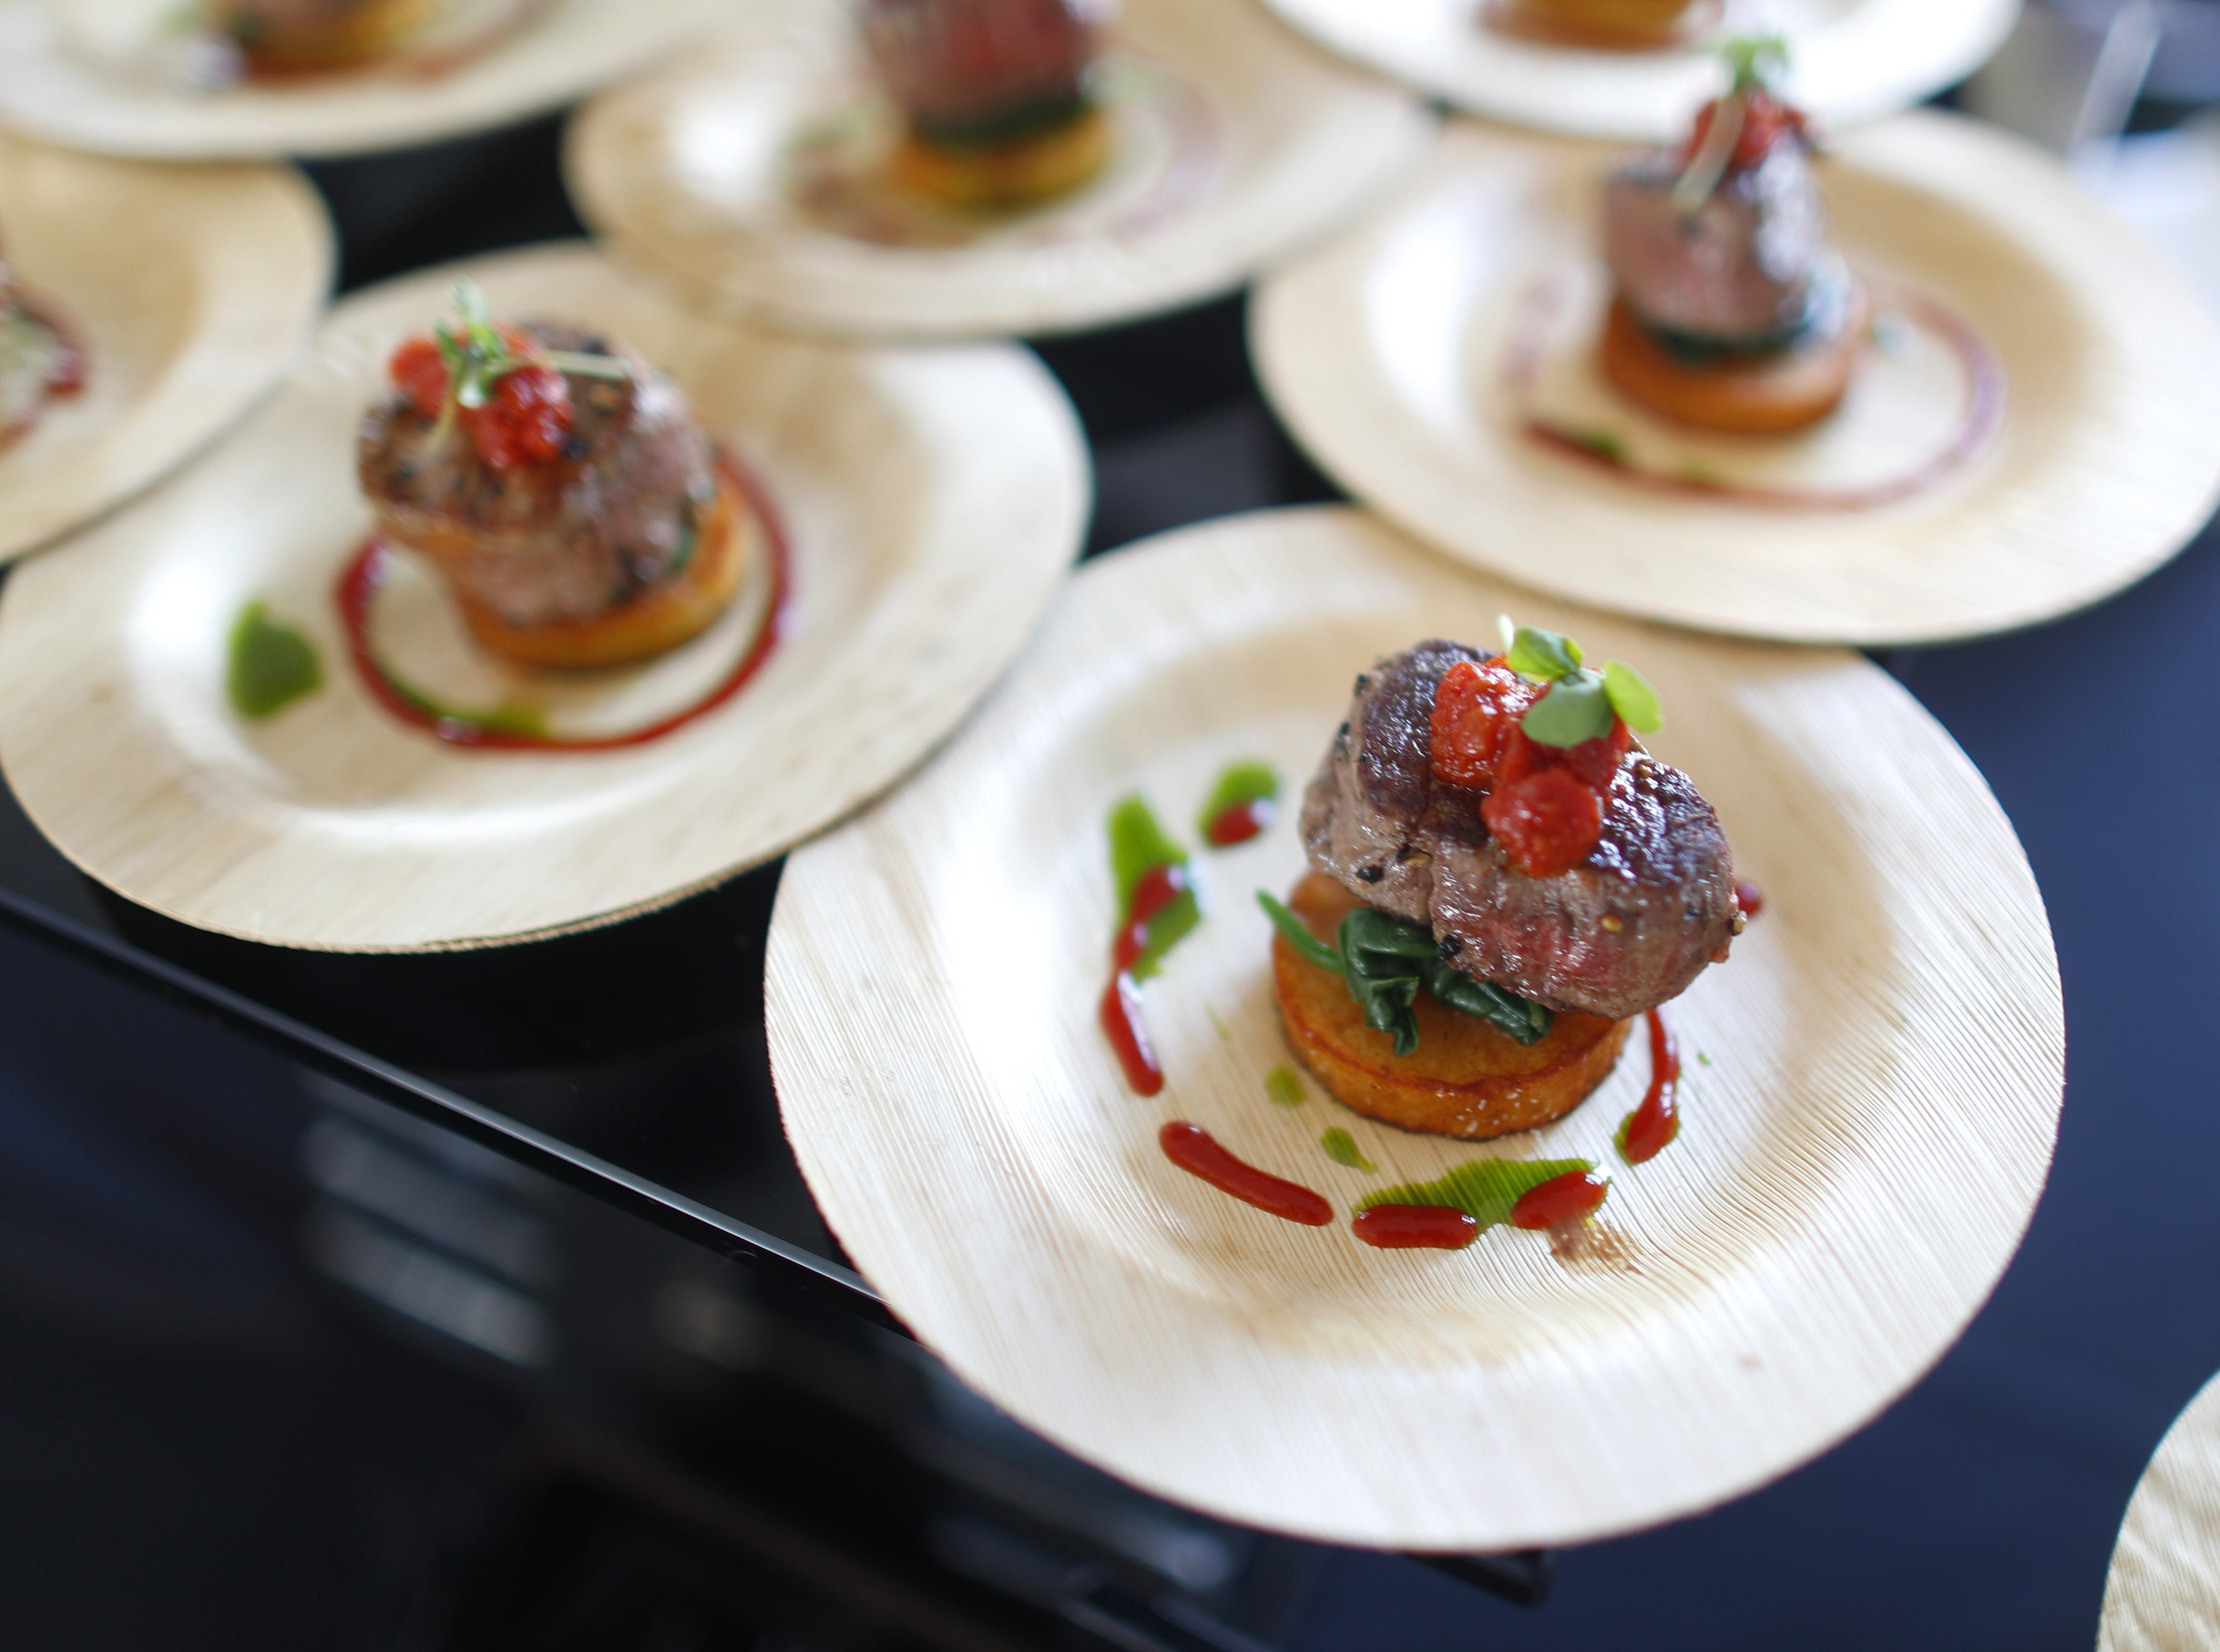 Seared beef tenderloin from J&G Steakhouse at the Phoenician during the azcentral Wine & Food Experience at WestWorld of Scottsdale, Ariz. on Nov. 4, 2018.